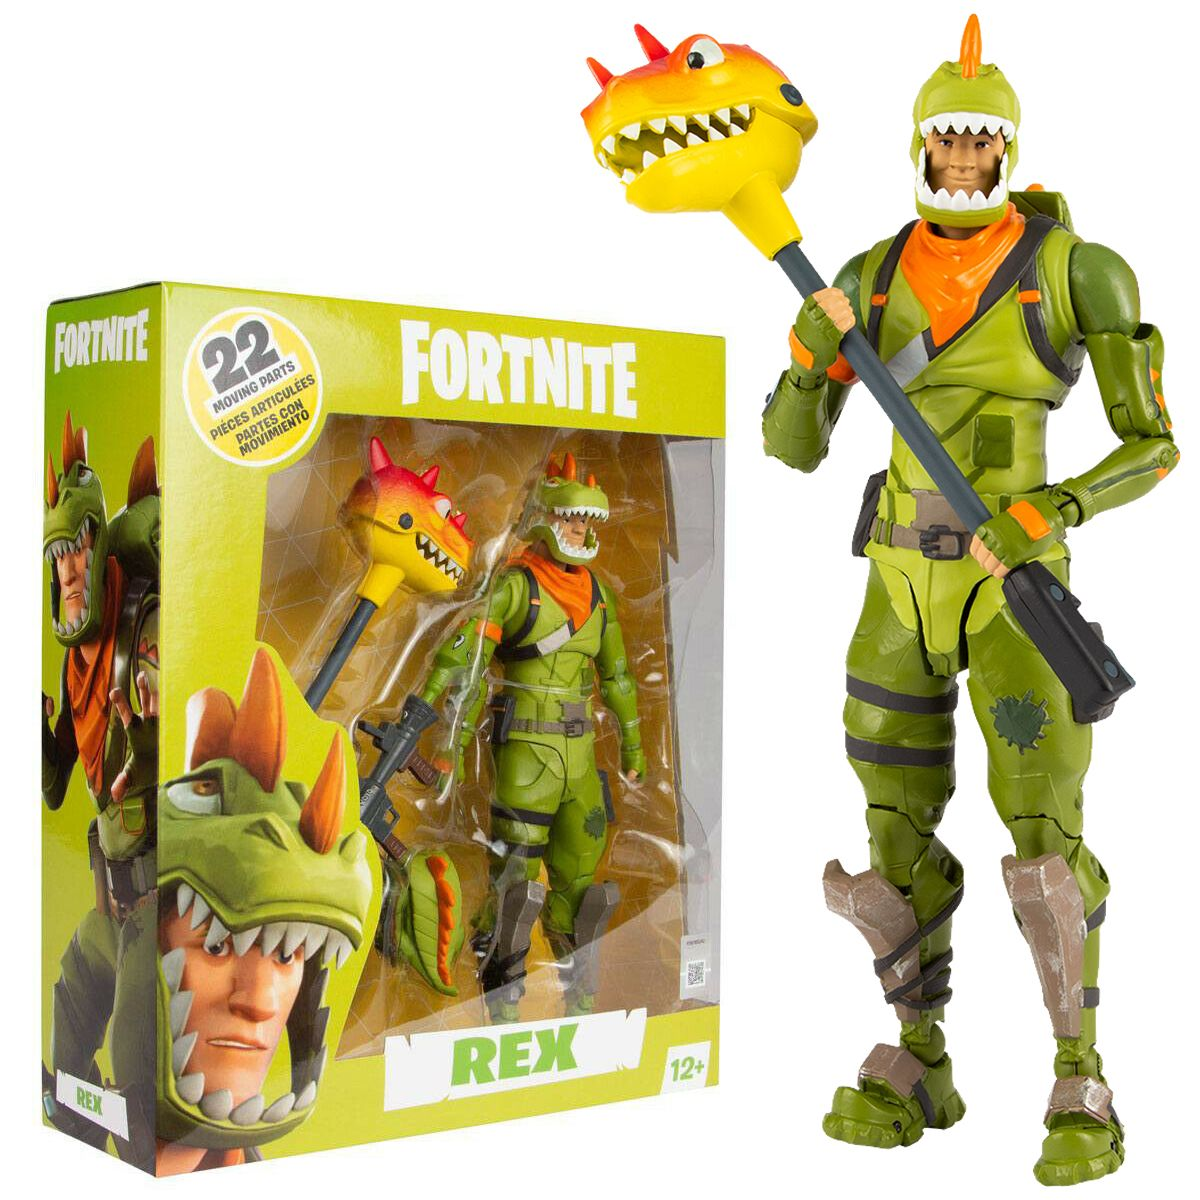 Fortnite Rex 7 Action Figure Buy Now At The G33kery Uk Stock